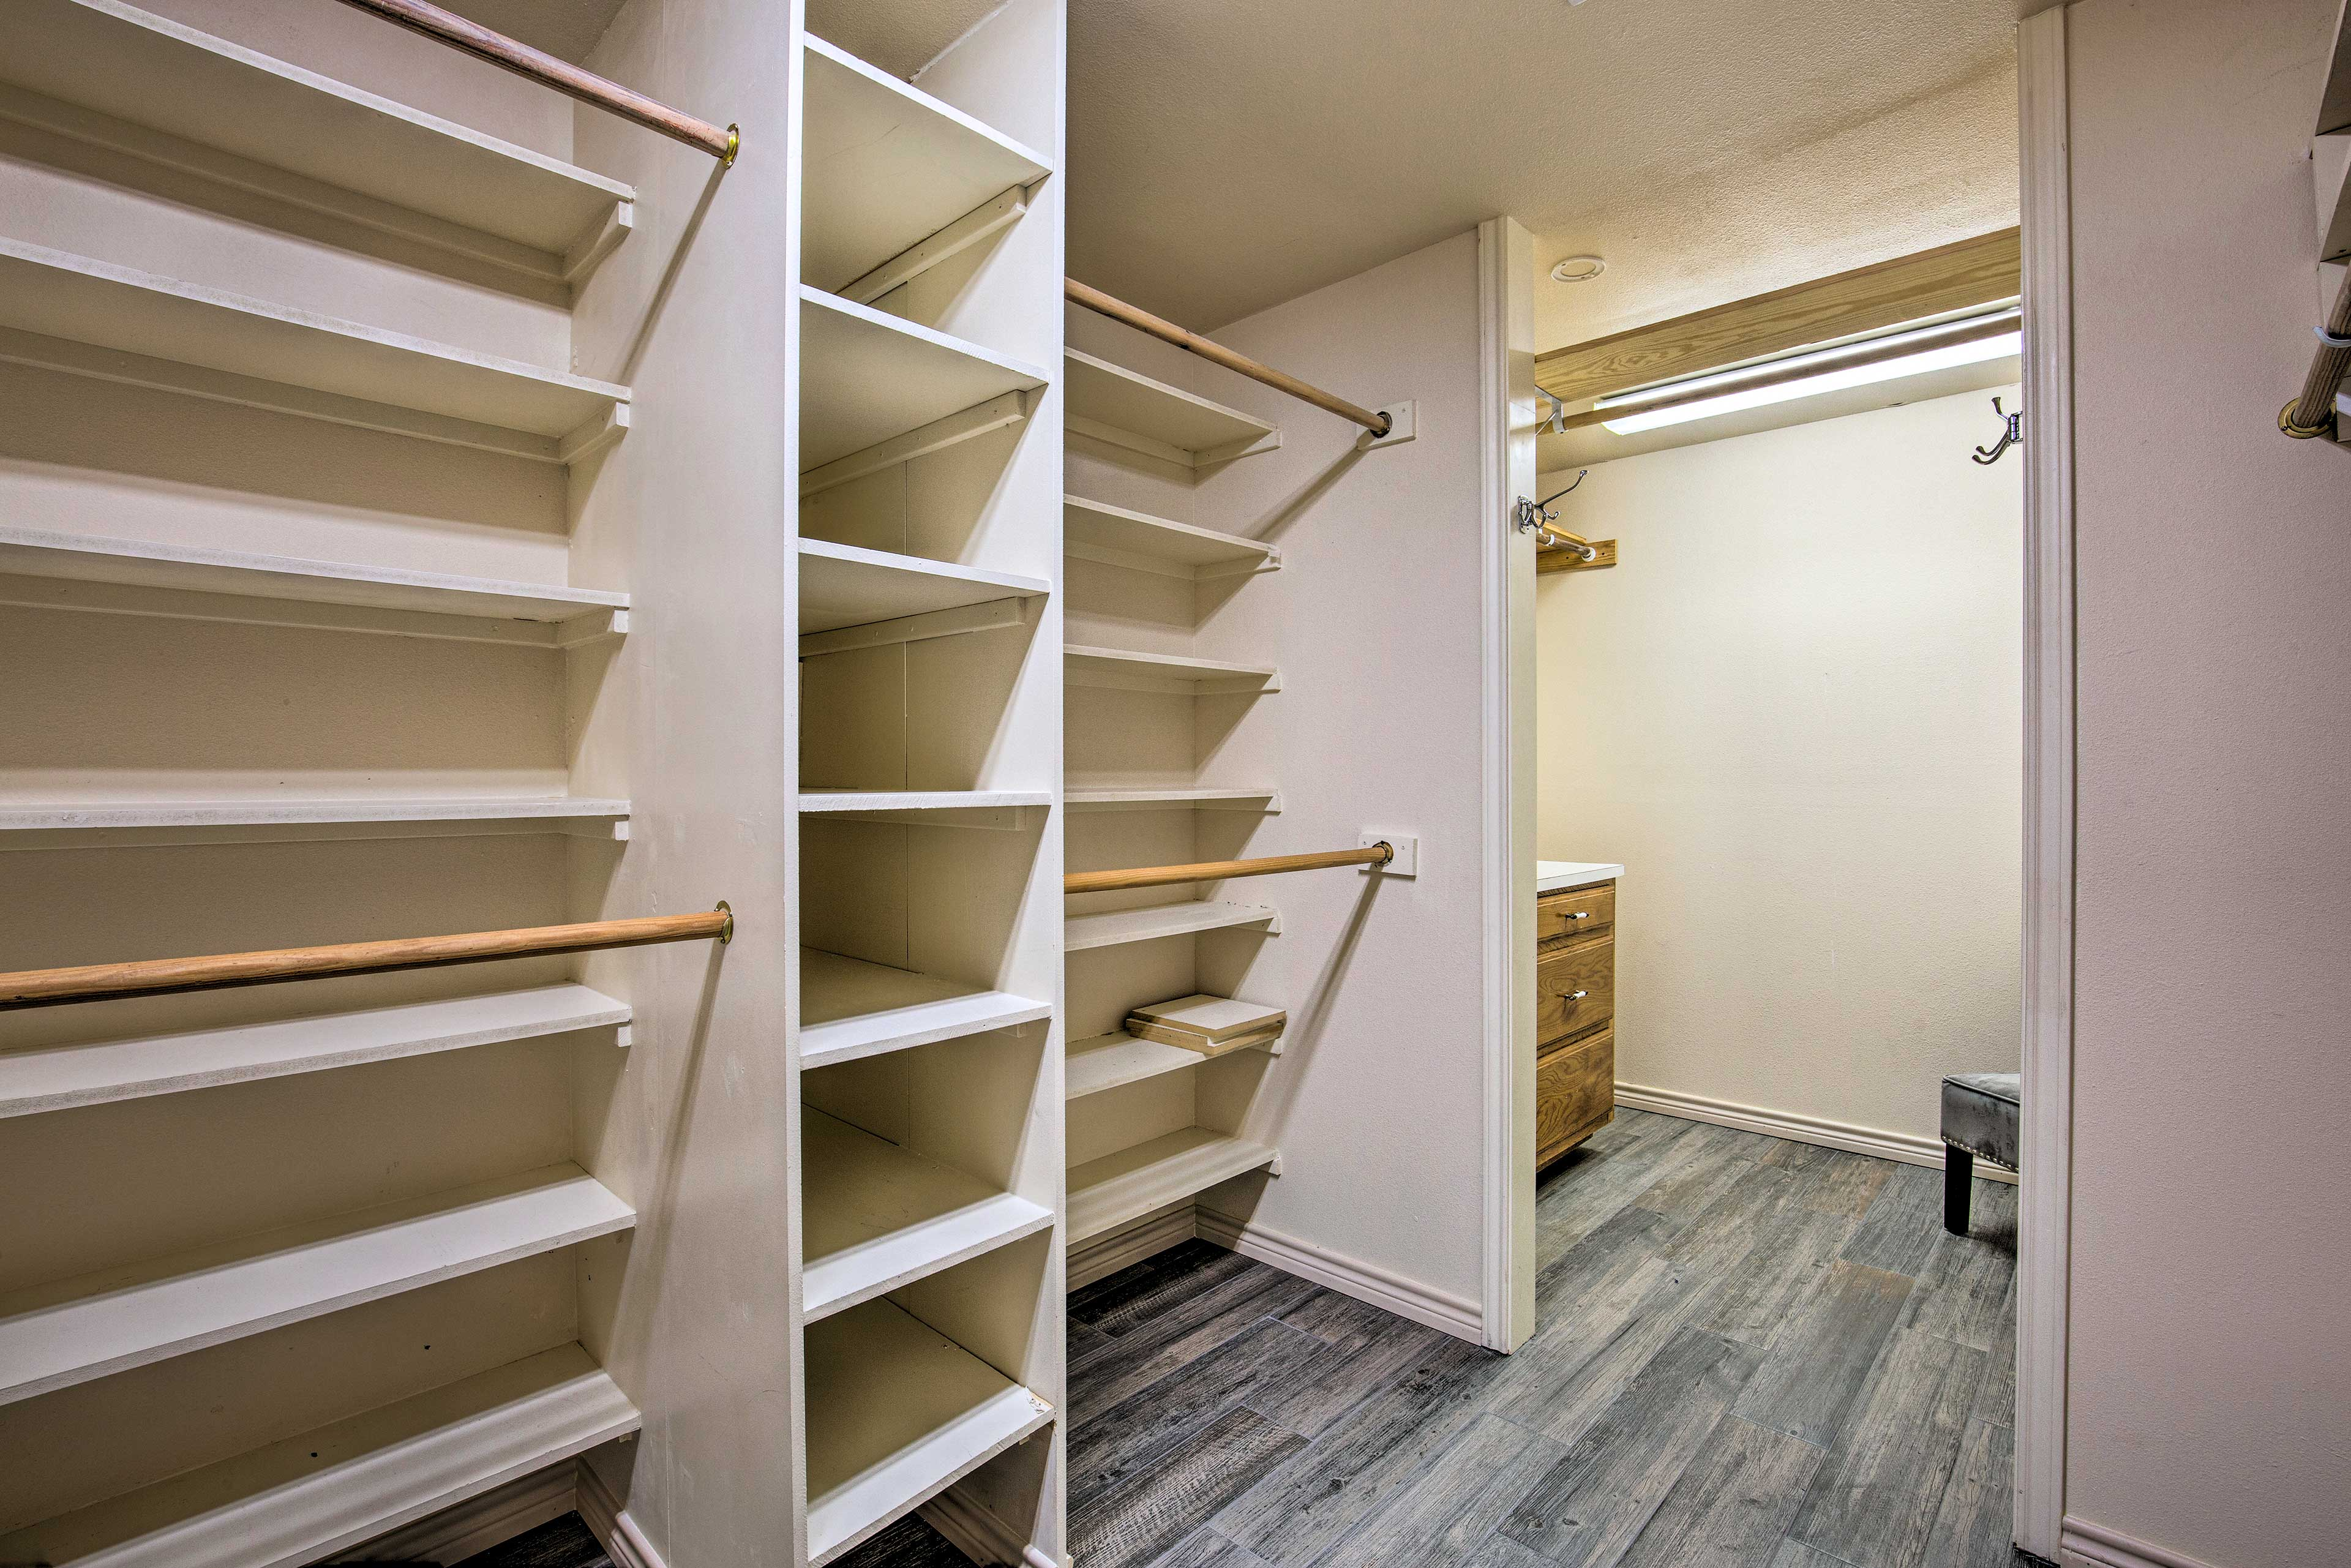 There is ample closet space to store your suitcases.